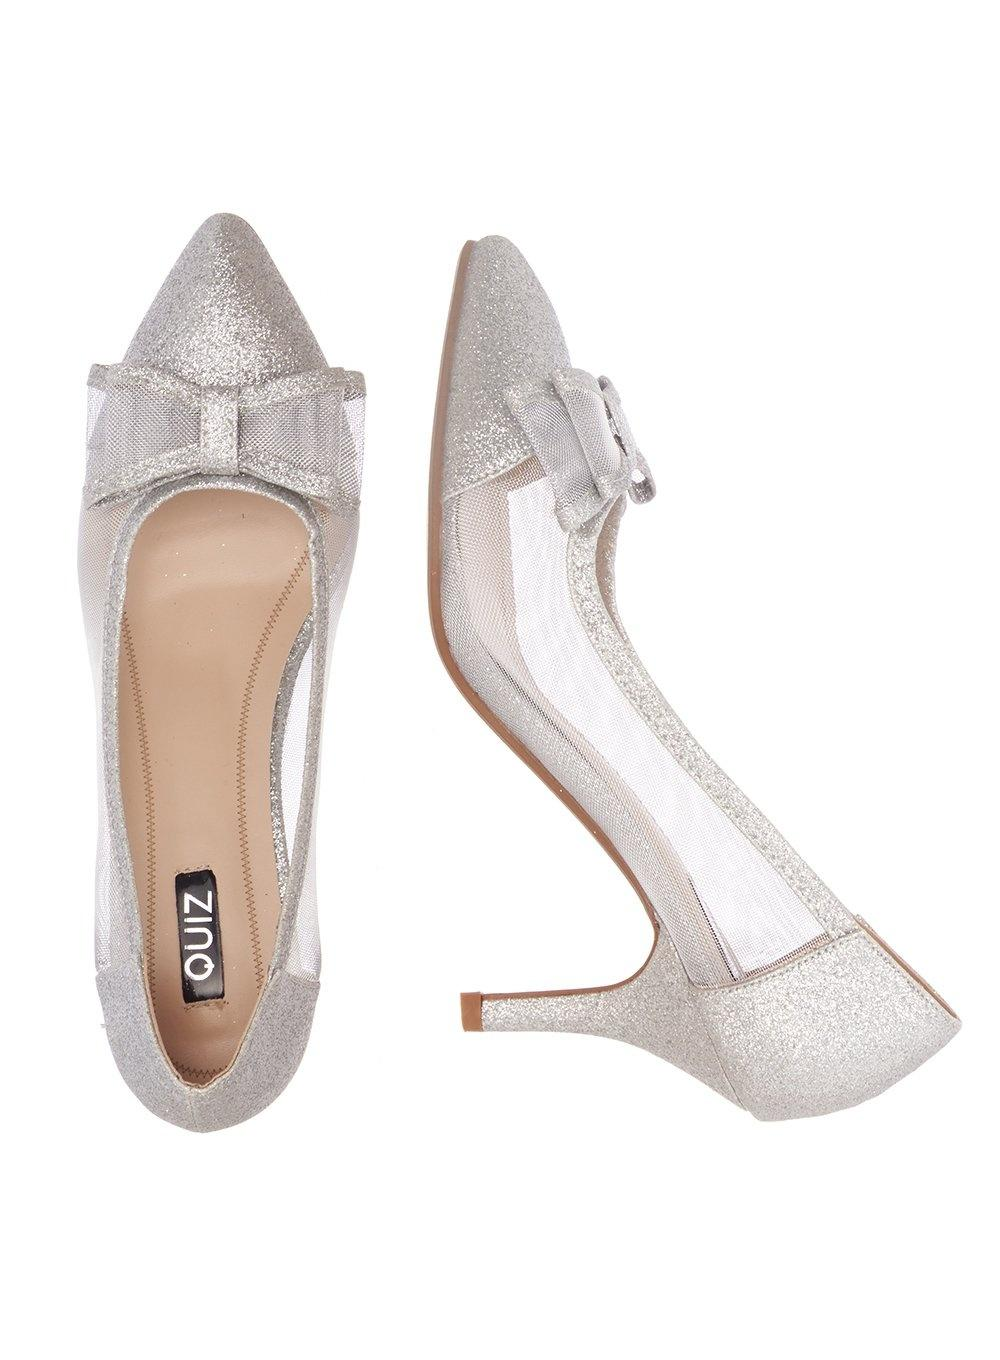 371ba8cd701 ... Metallic Quiz Silver Bow Mesh Point Court Shoes - Lyst. View fullscreen